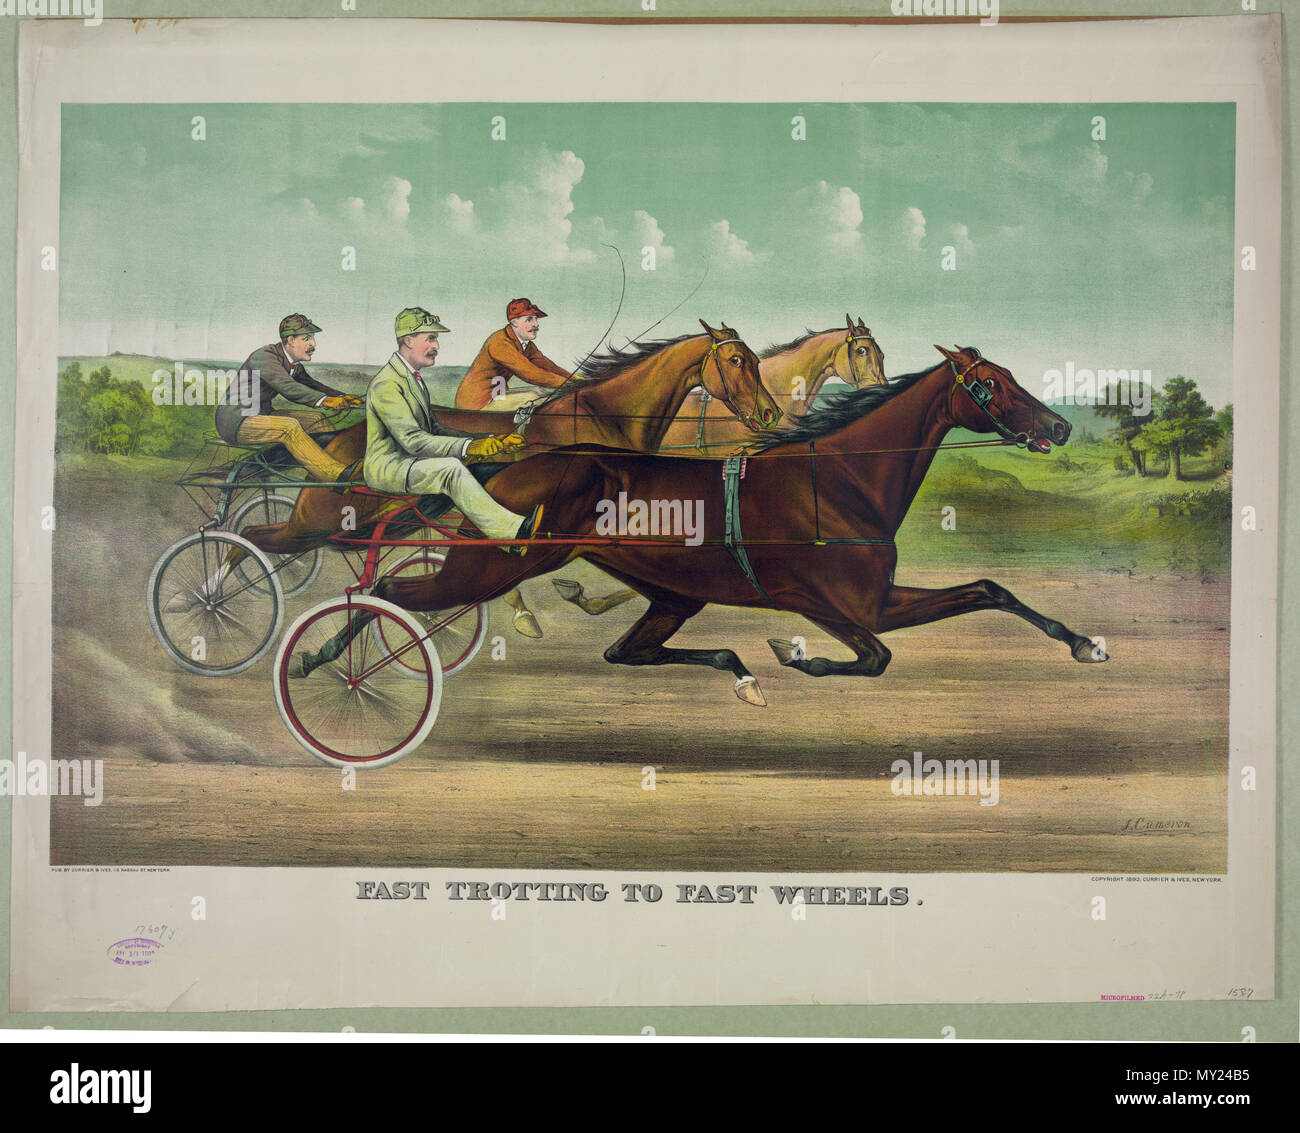 Fast trotting to fast wheels c 1893 - John Cameron - Stock Image